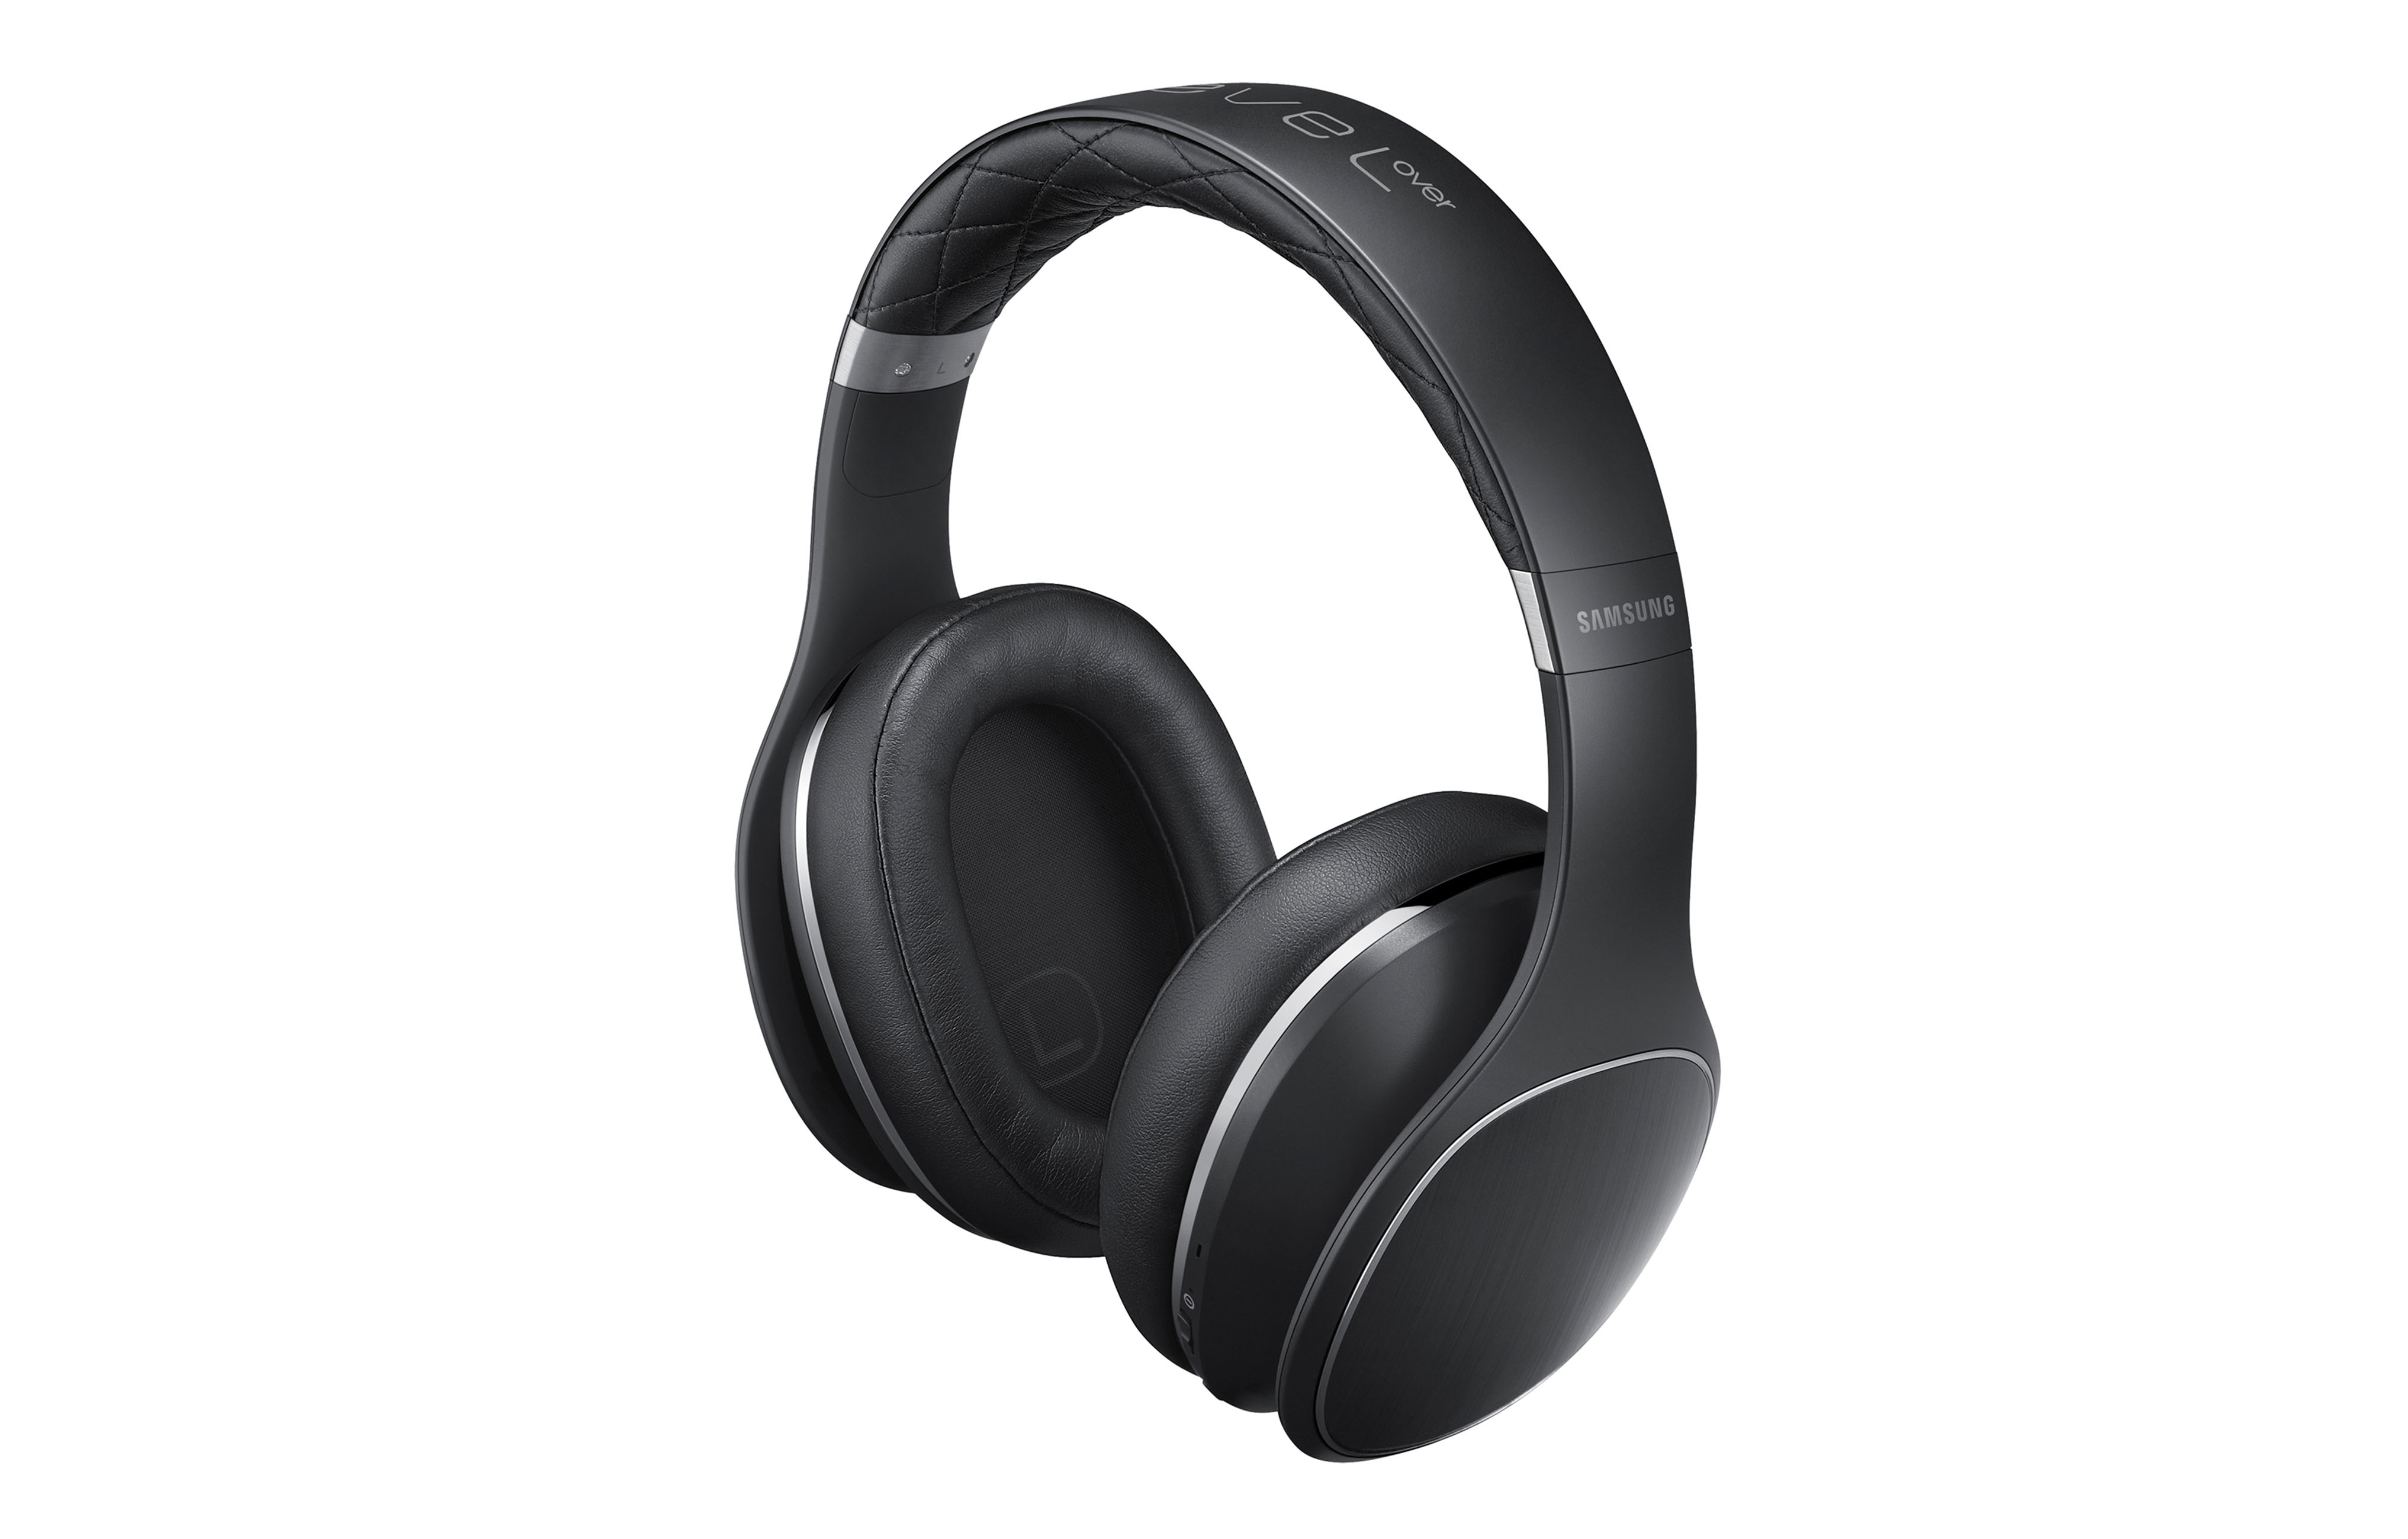 Samsung Level headphones and speakers officially announced